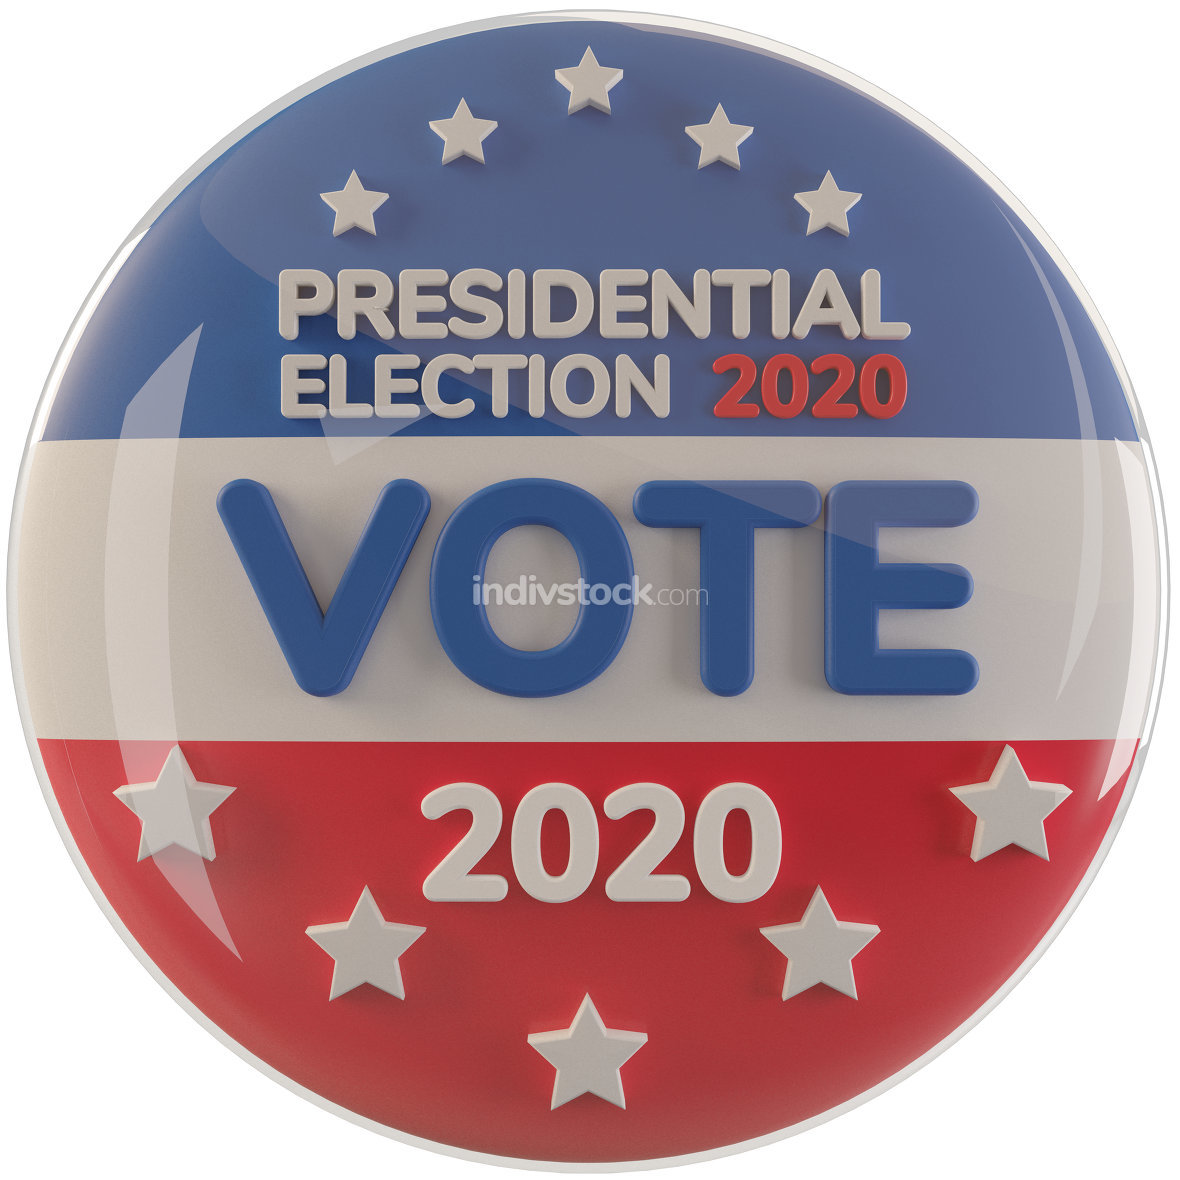 presidential election 2020 - vote 3d-illustration symbol button